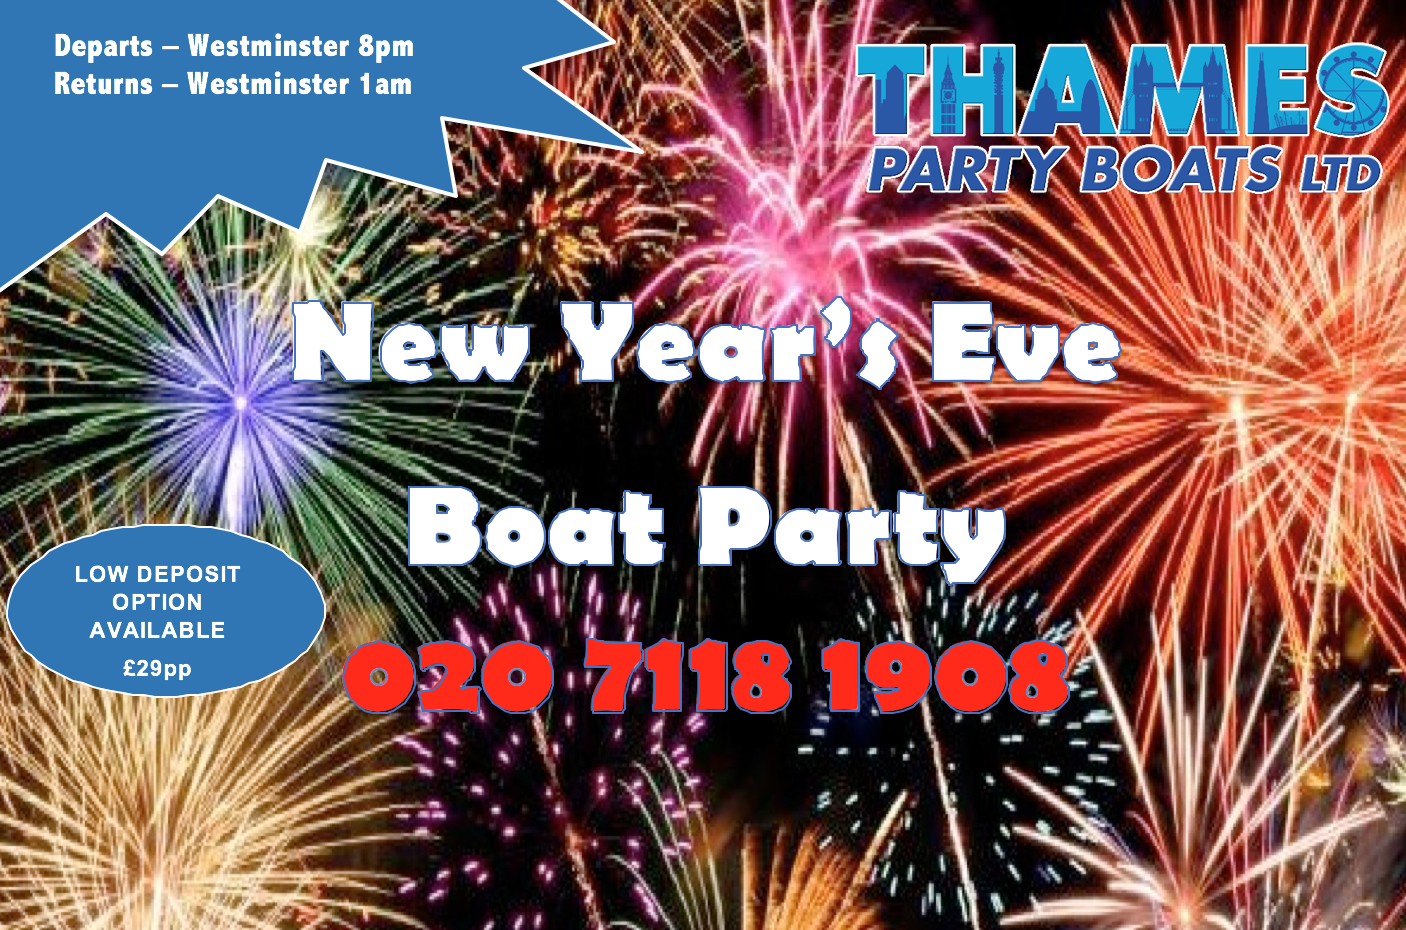 New Year's Eve 2018 - Boat Party.